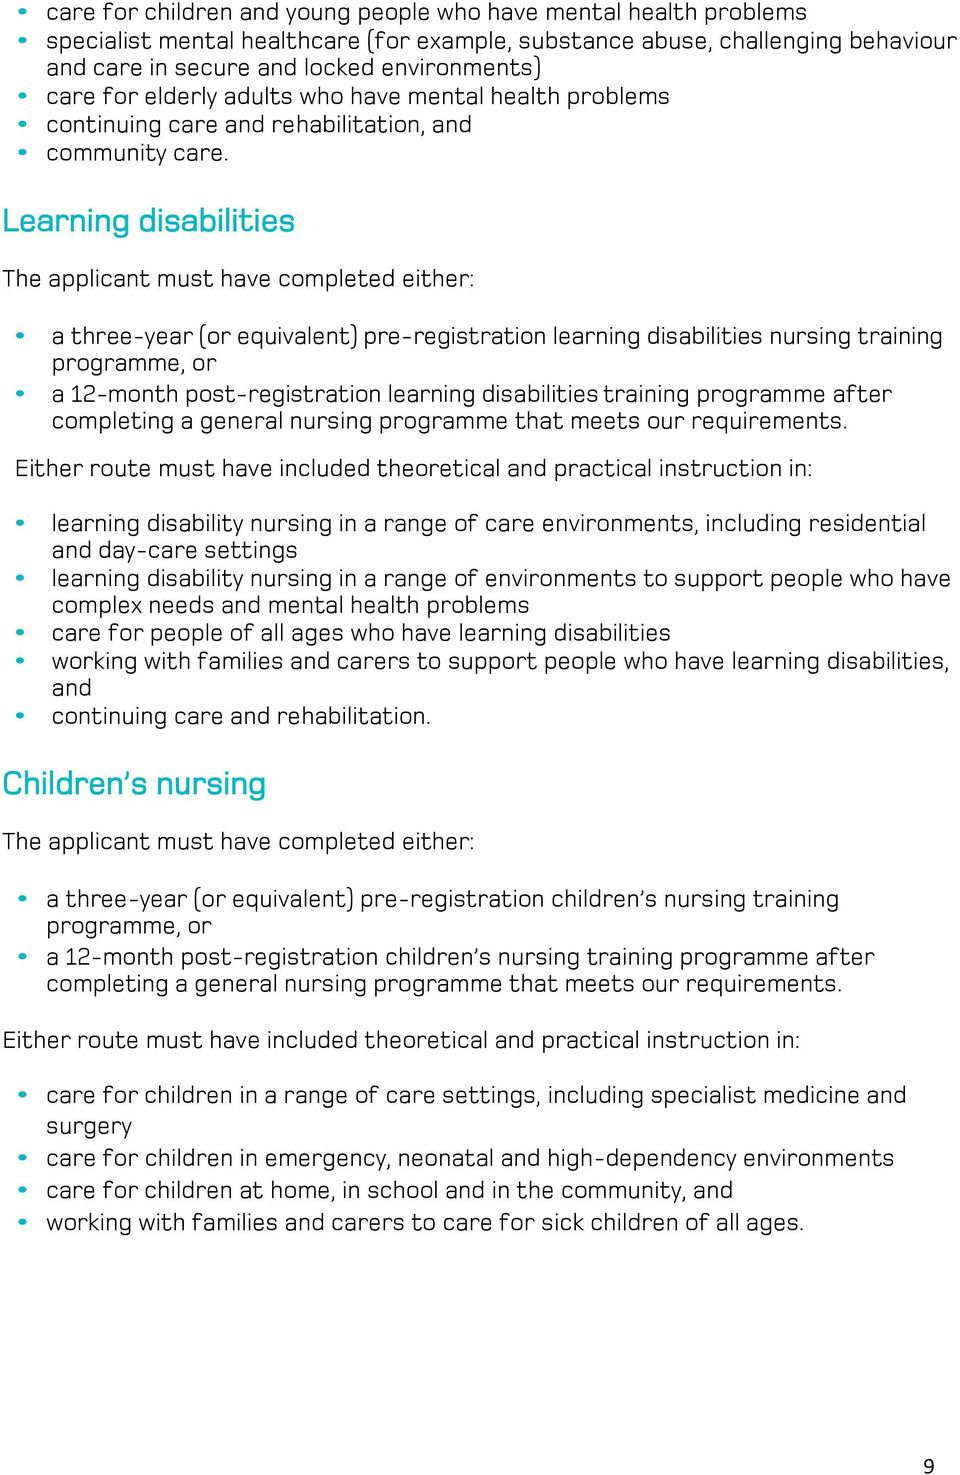 Learning disabilities The applicant must have completed either: a three-year (or equivalent) pre-registration learning disabilities nursing training programme, or a 12-month post-registration